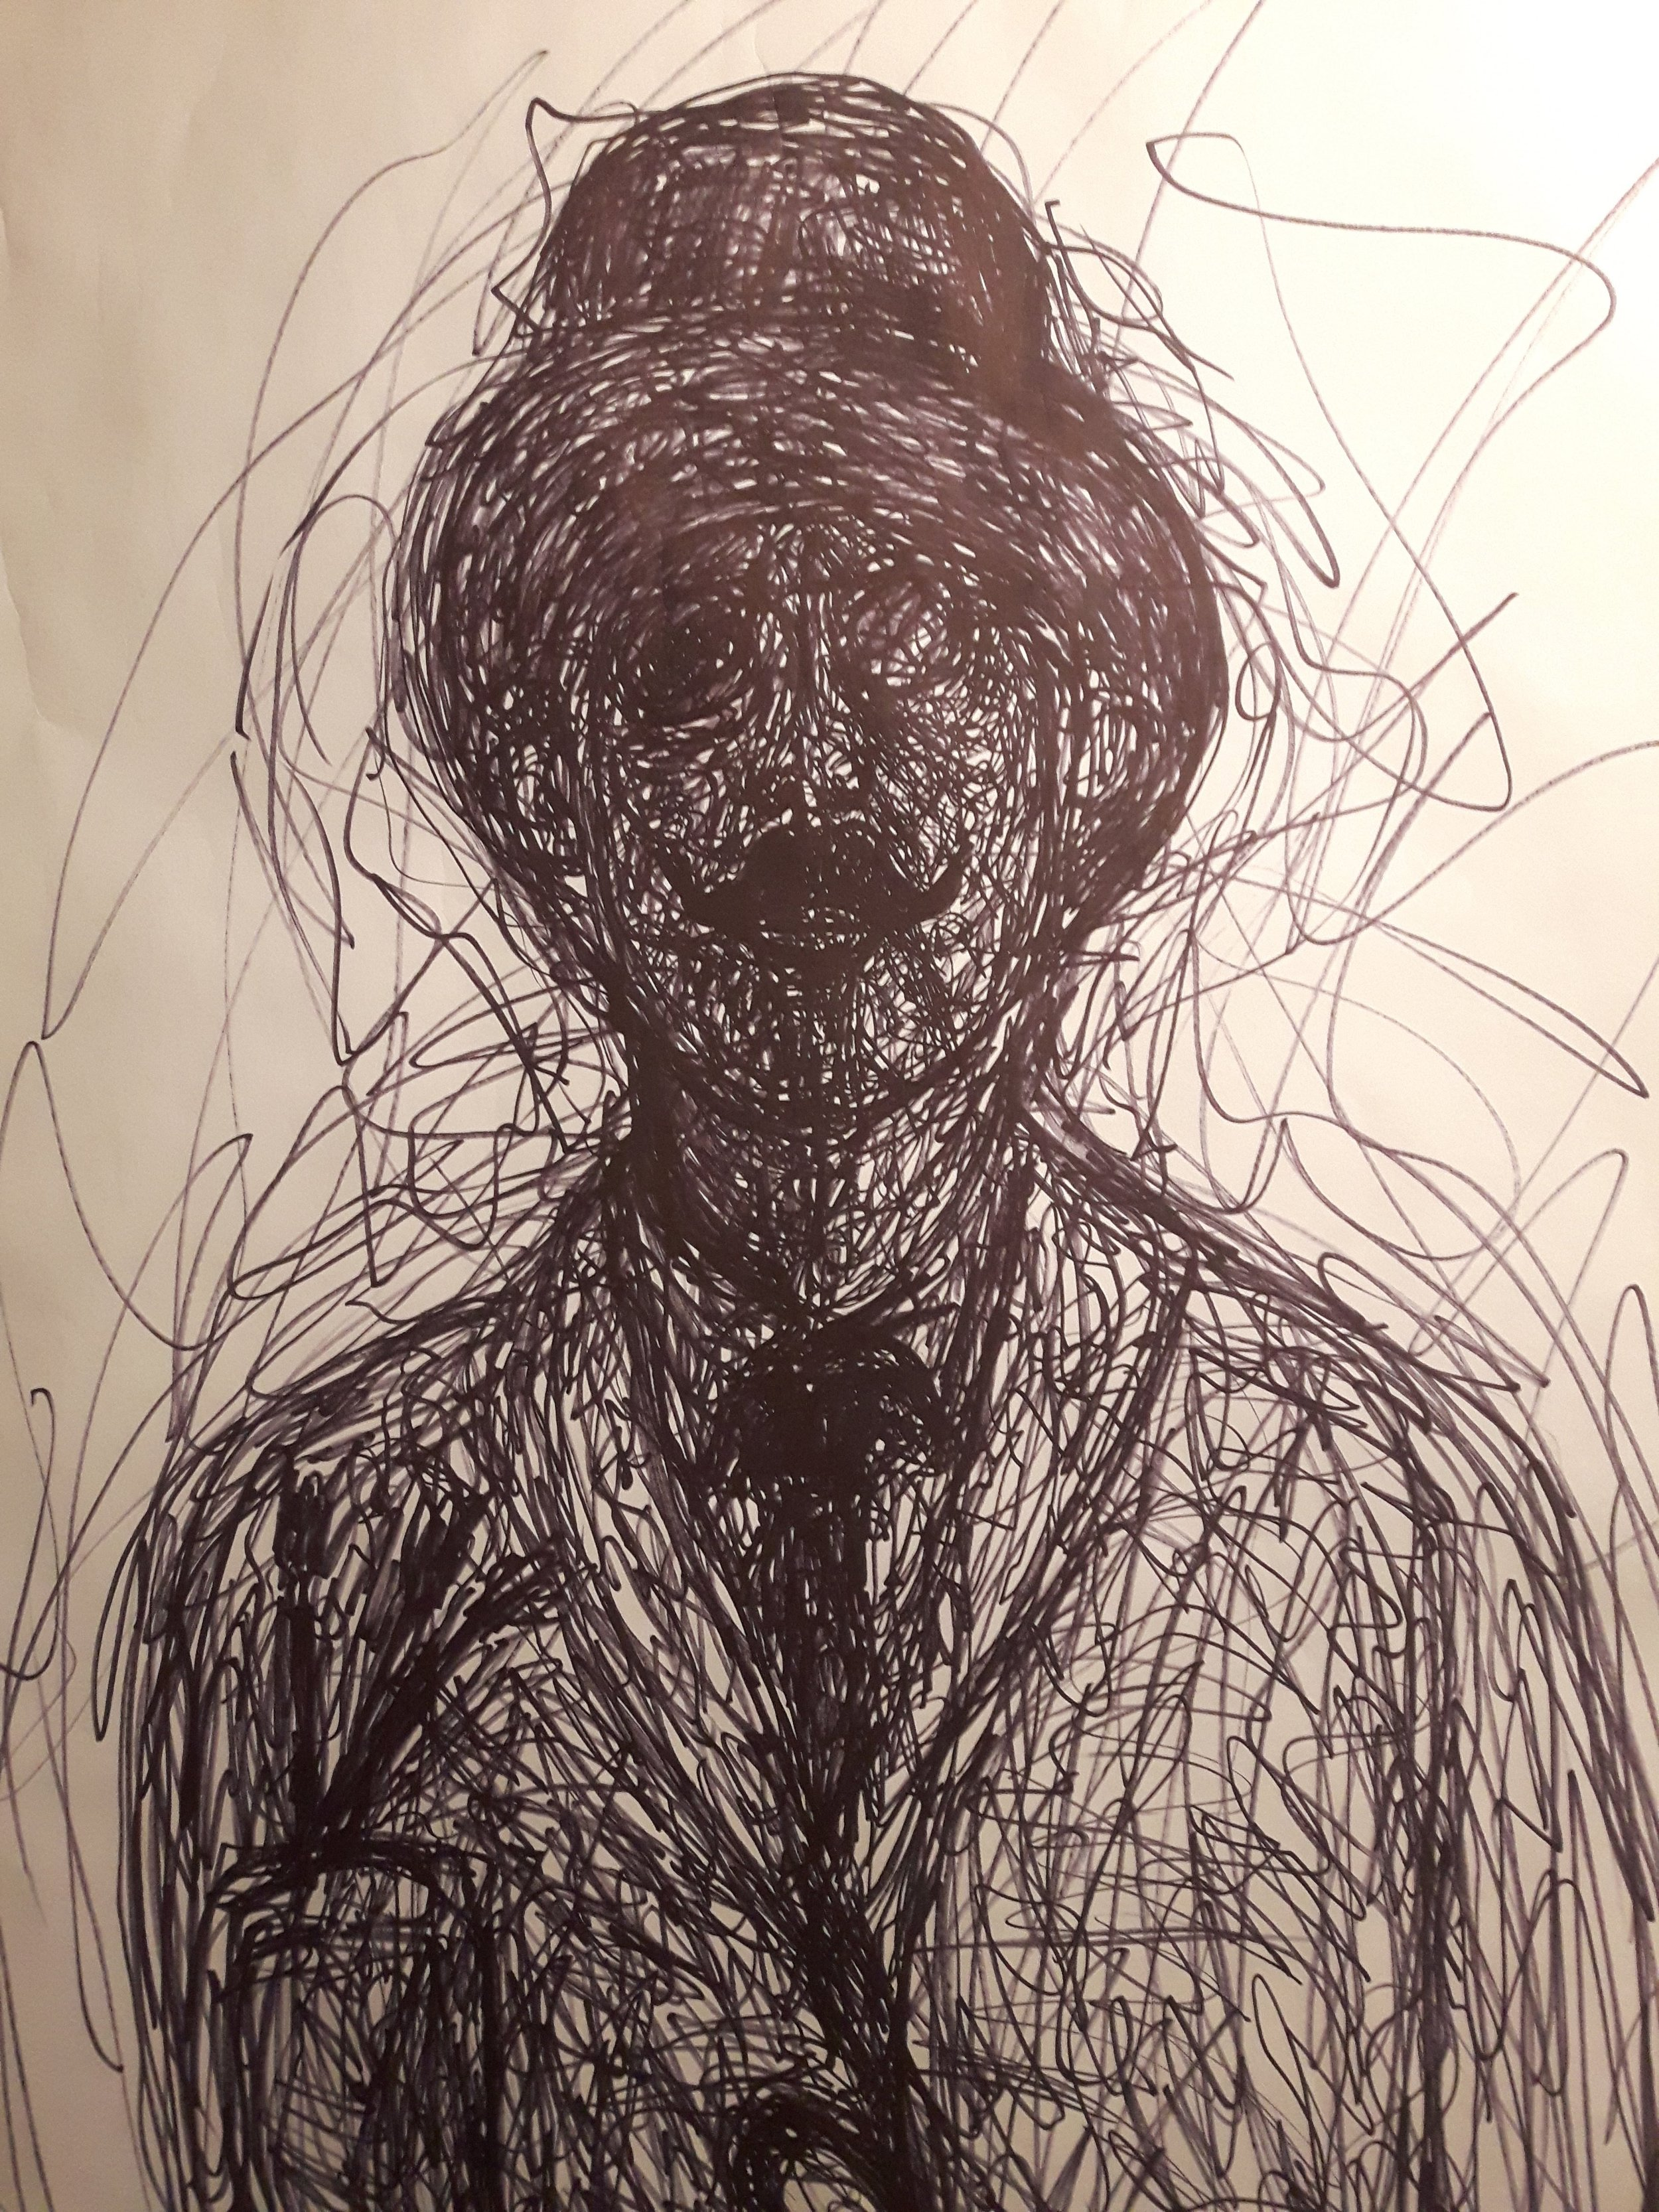 Larger than life drawing of Grudman 7x5 Ft